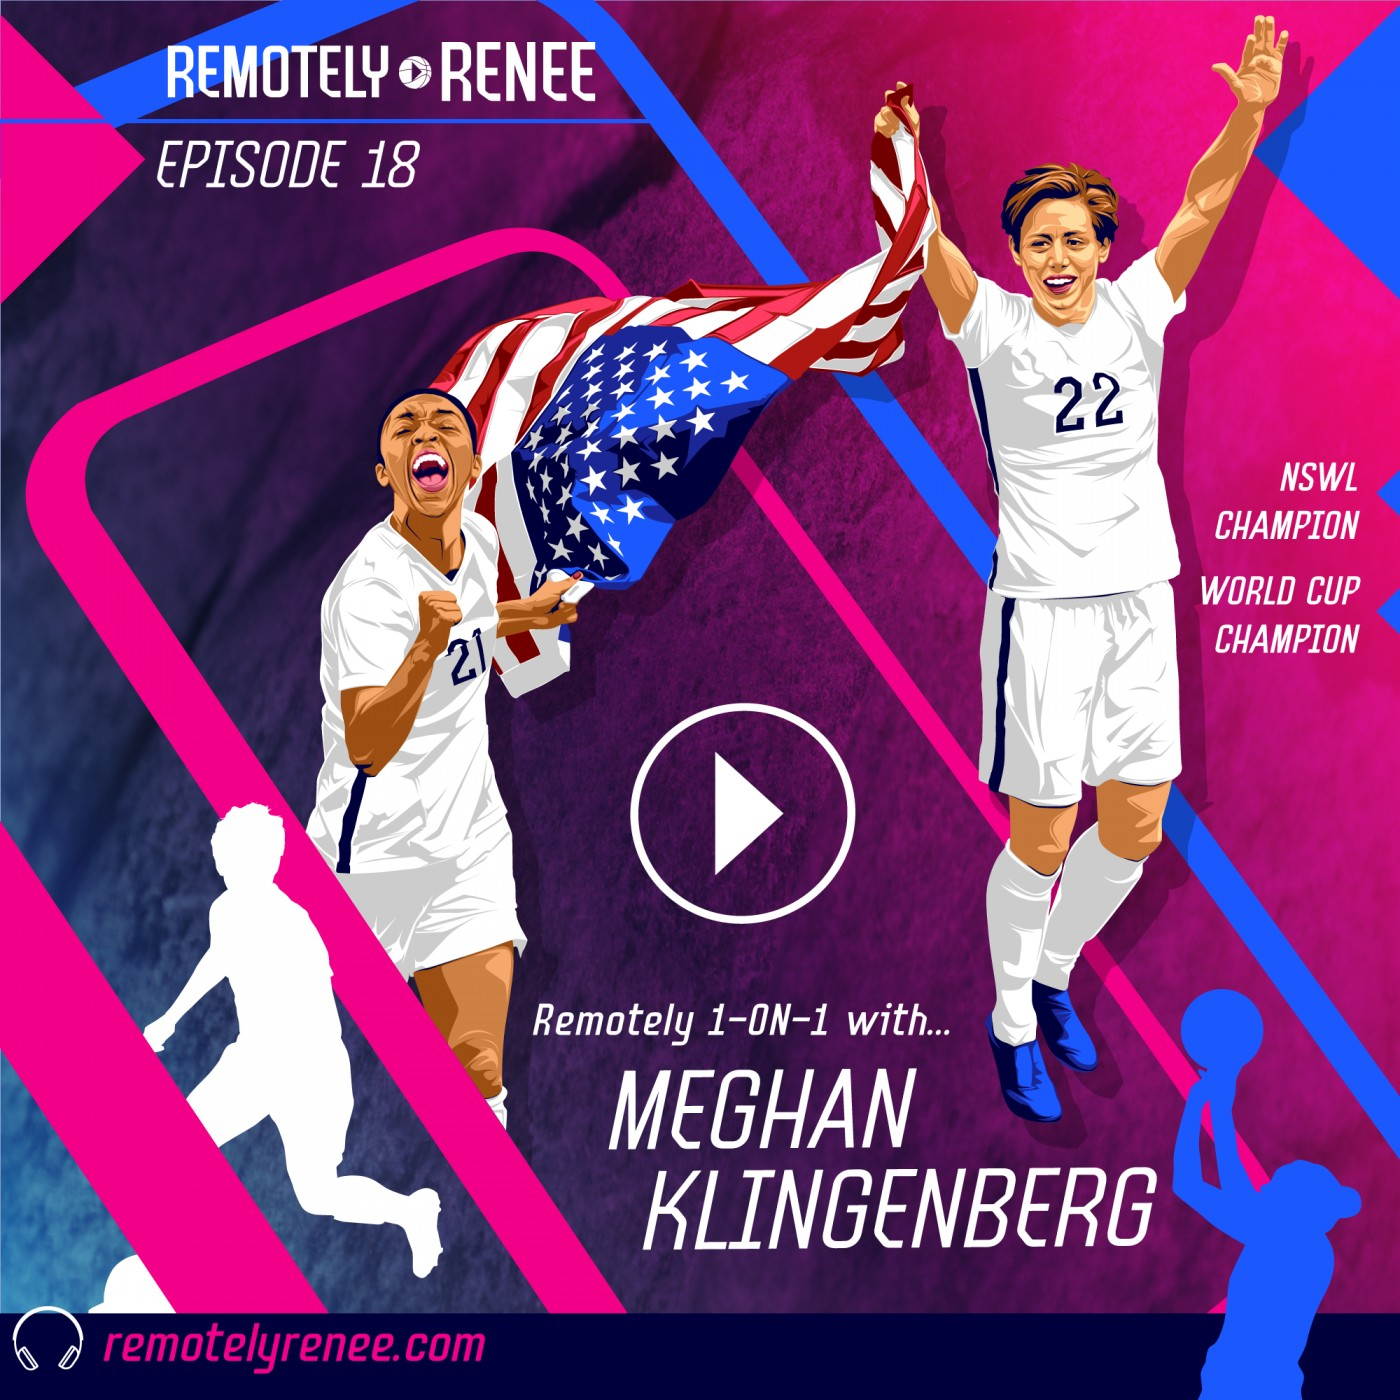 Ep 18.5 - Meghan Klingenberg - World Cup and NWSL Champion IRL